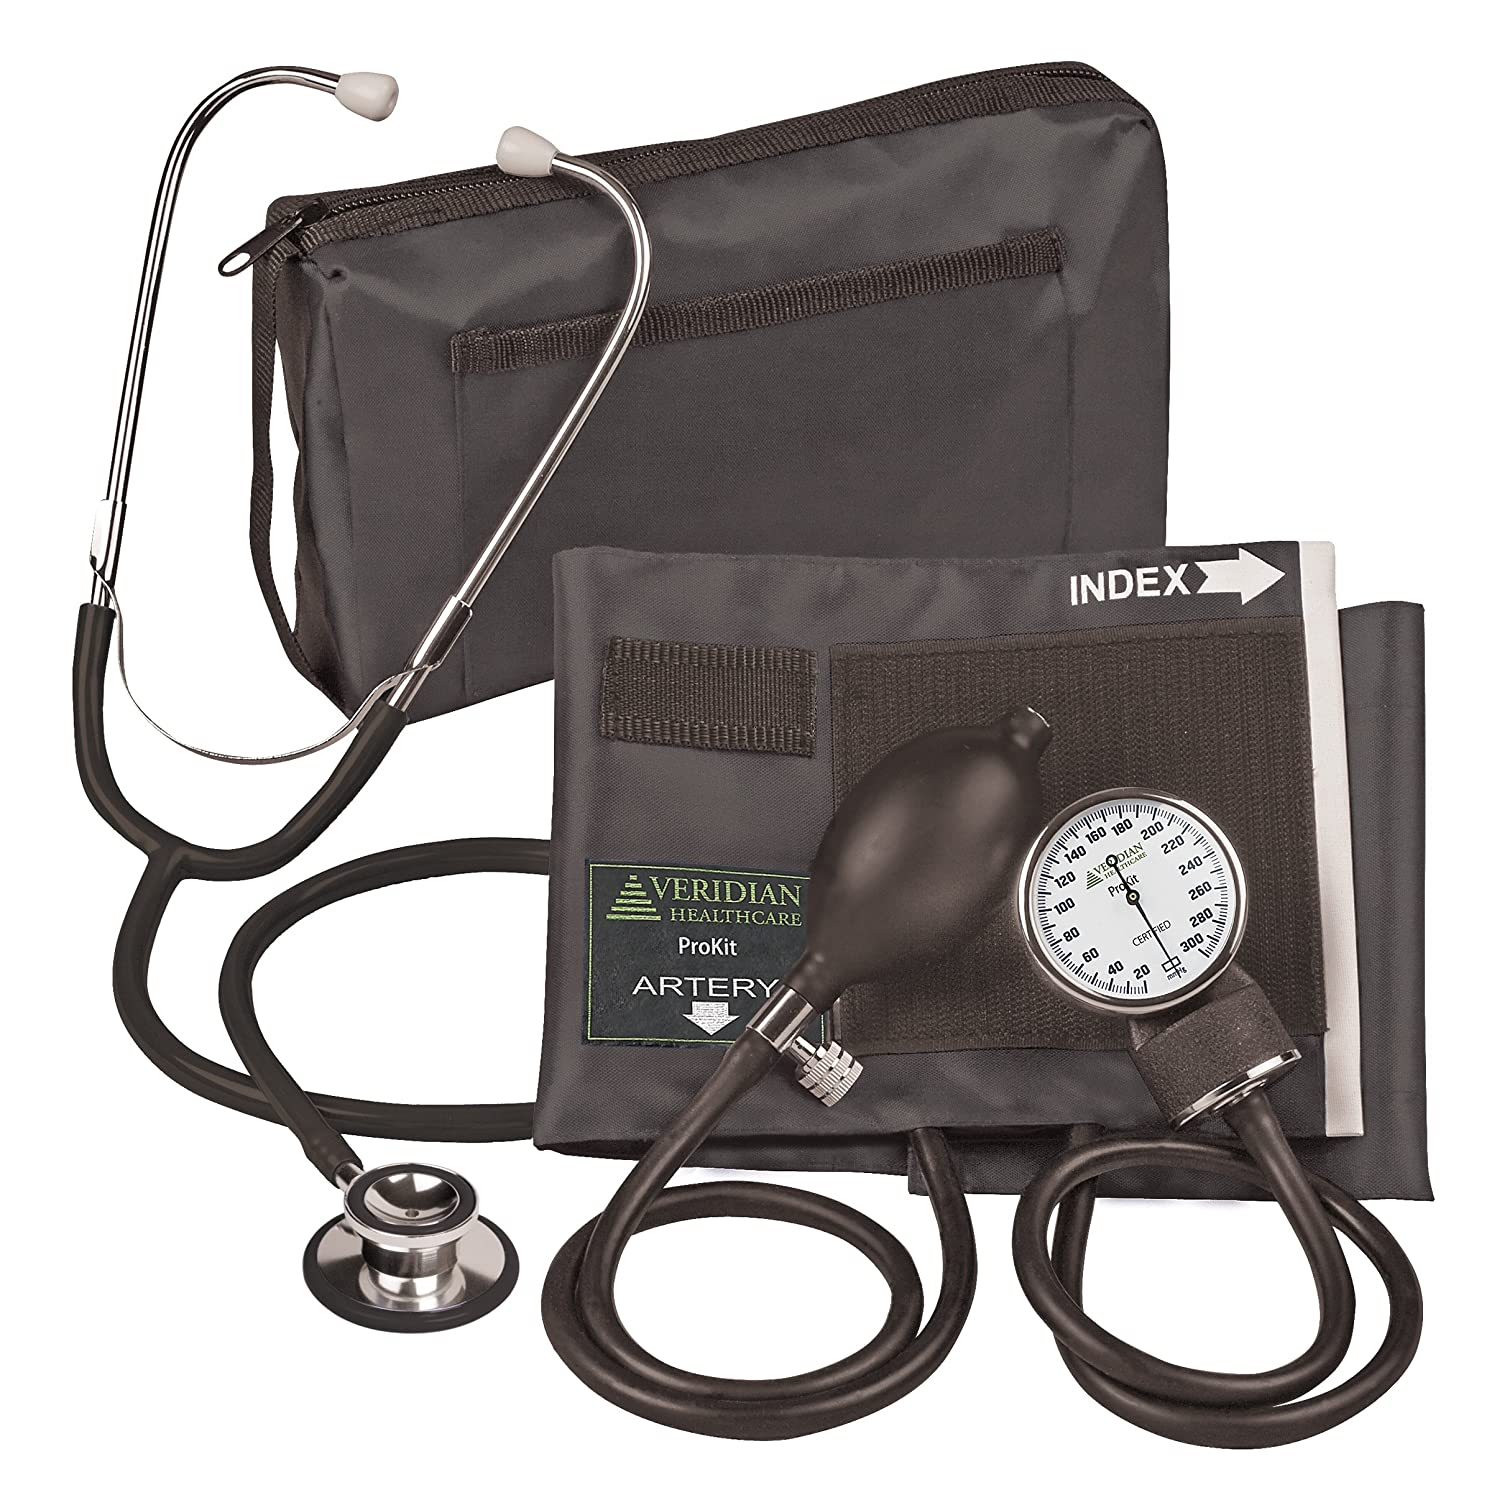 Amazon.com: Veridian 02-12701 Aneroid Sphygmomanometer with Dual-head Stethoscope Kit, Adult, Black: Health & Personal Care